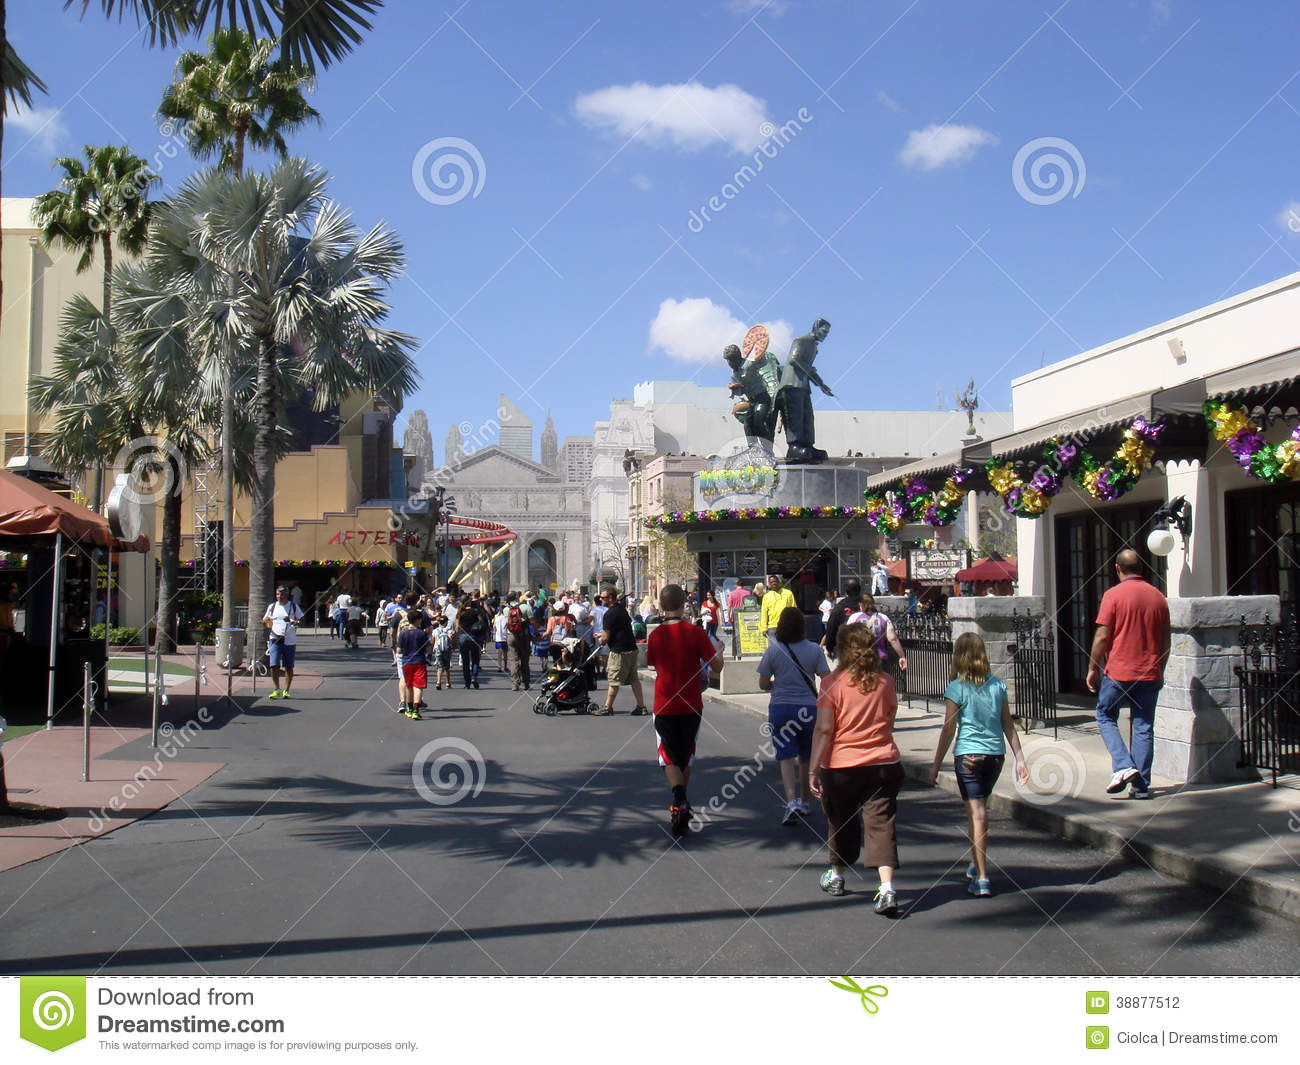 Universal studios florida editorial photography image for A new image salon orlando